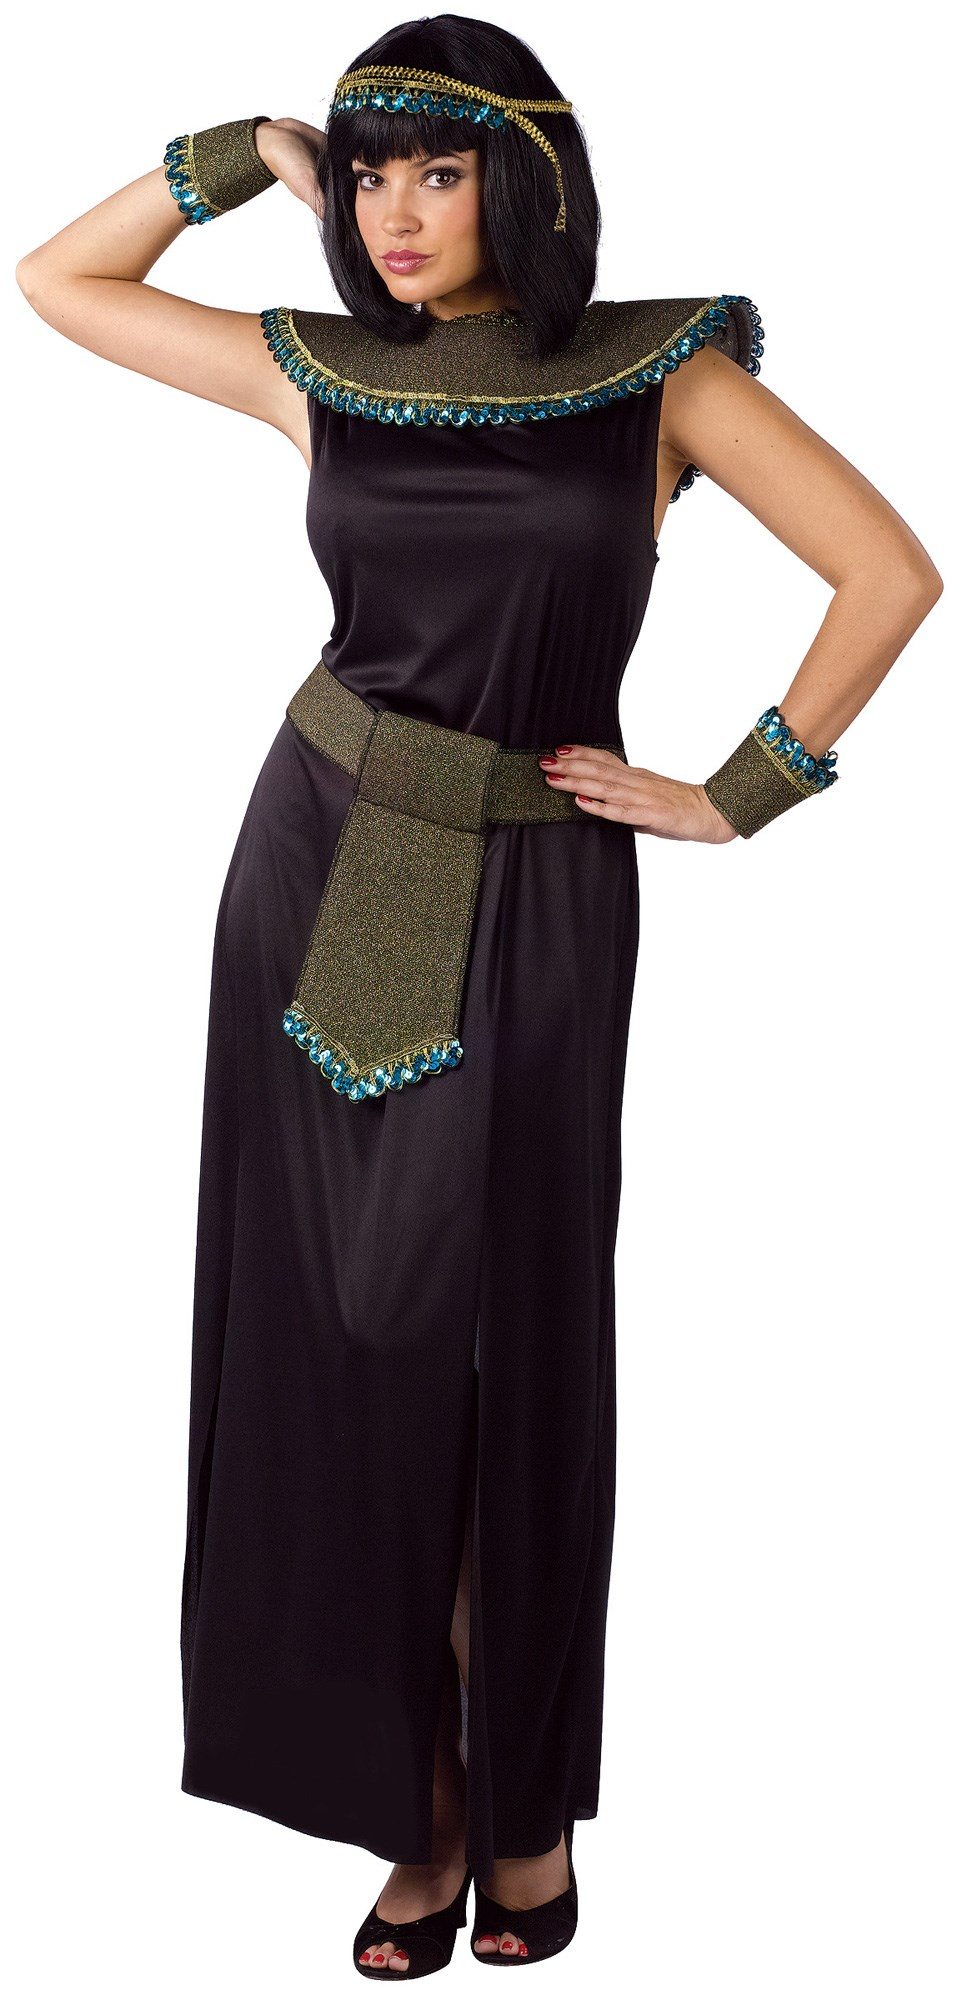 Image of Black/Gold Cleopatra Adult Costume